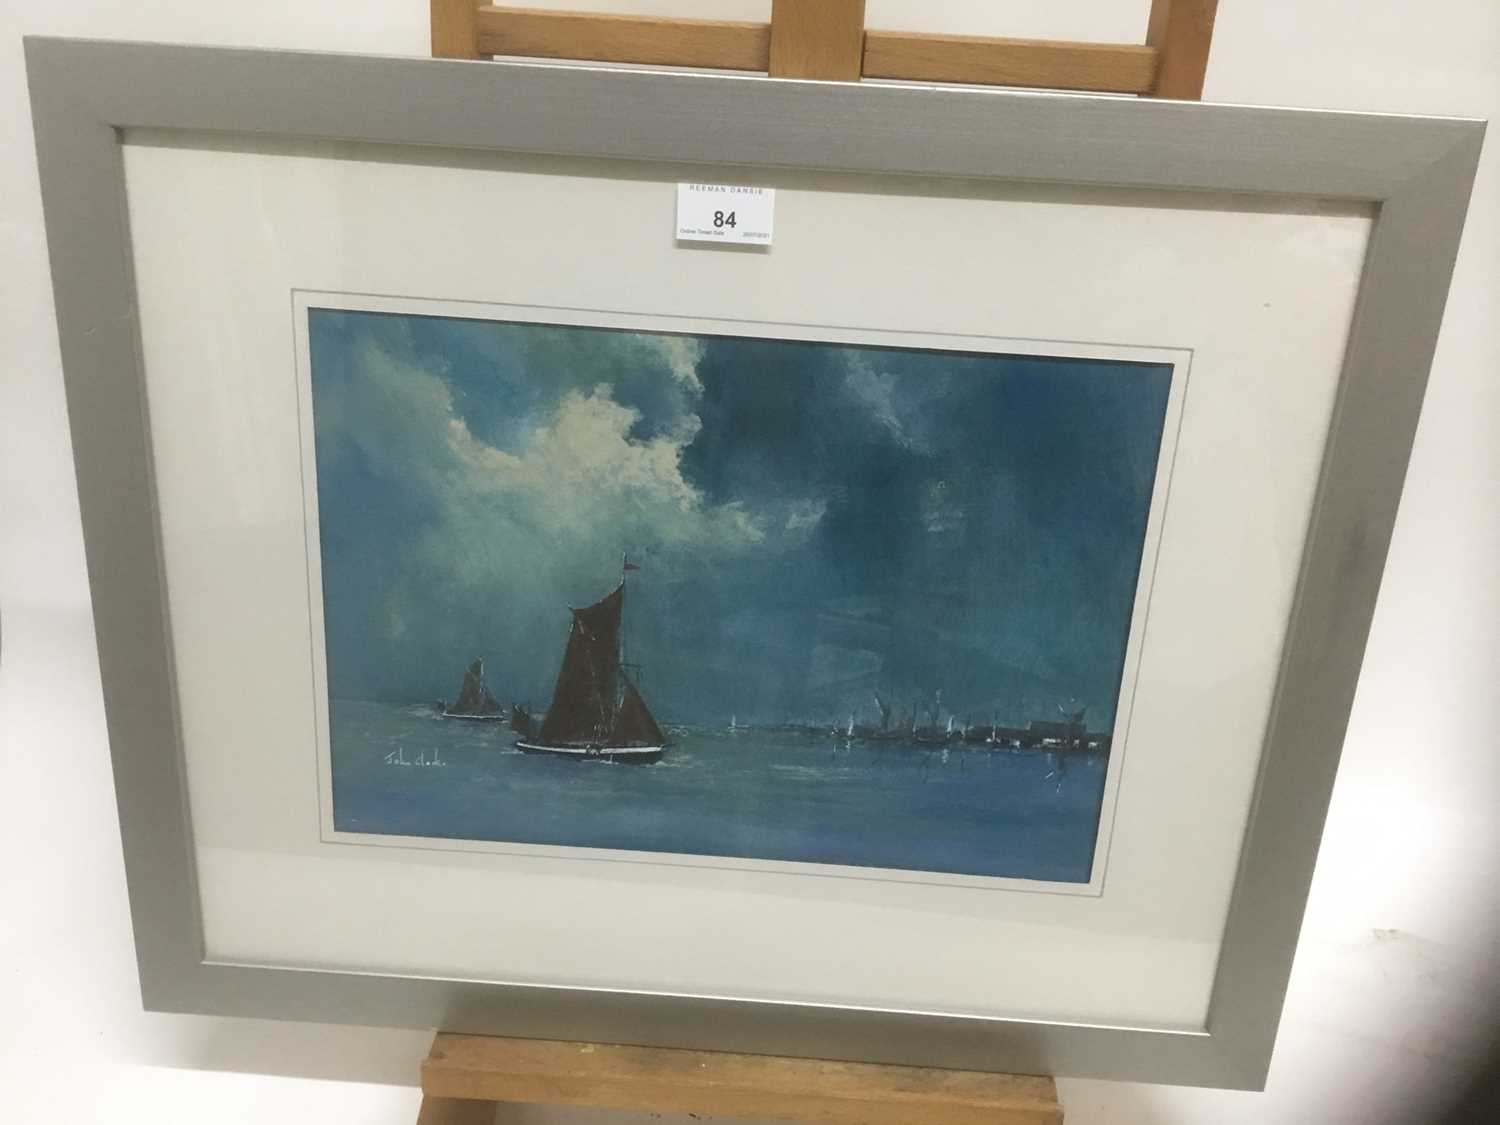 John Clarke, contemporary, oil on board - sailing barges, signed, 25cm x 36cm, in glazed frame